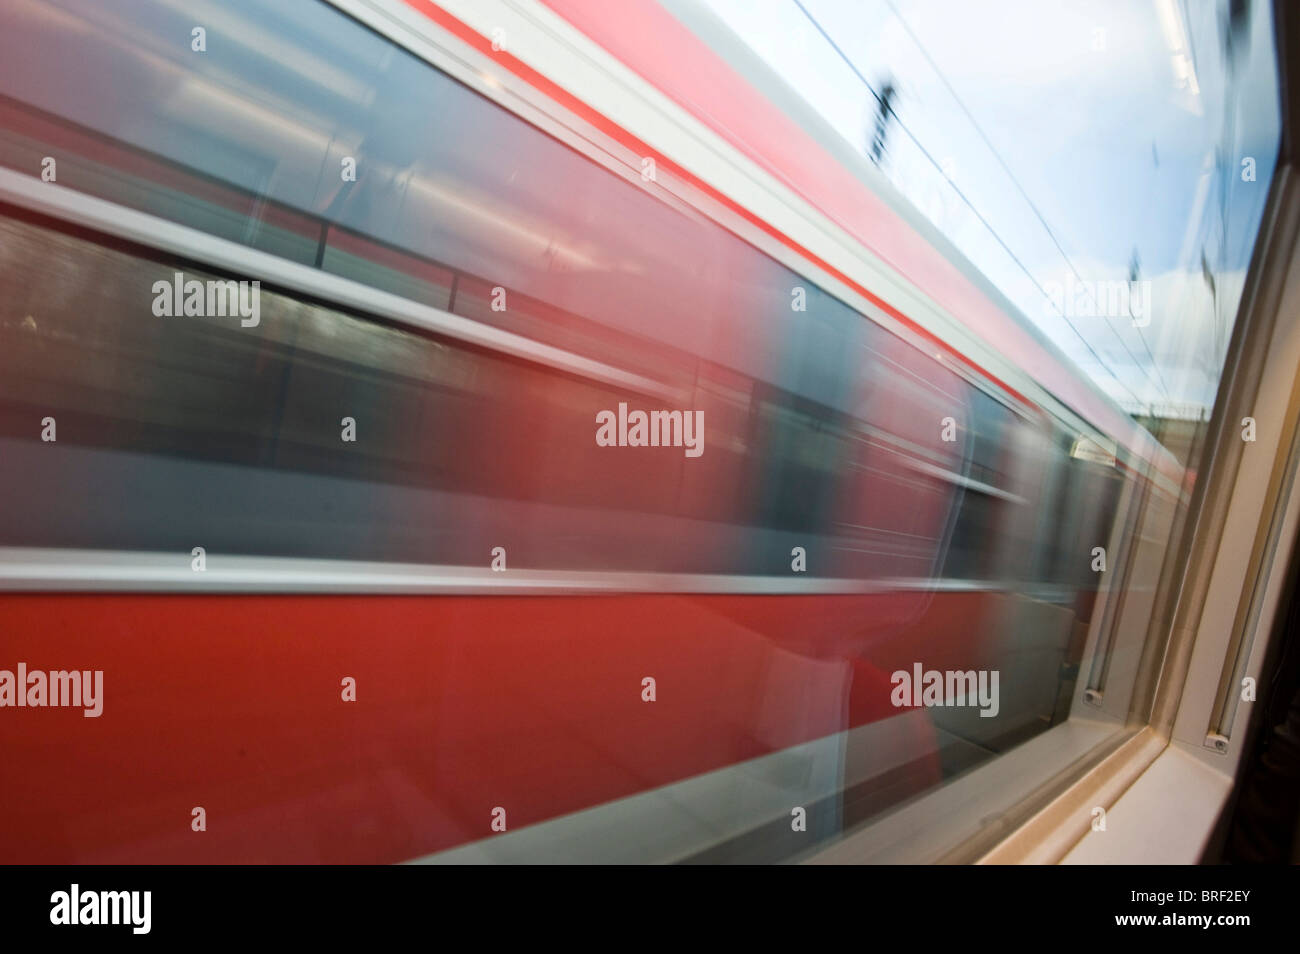 Train passing by - Stock Image